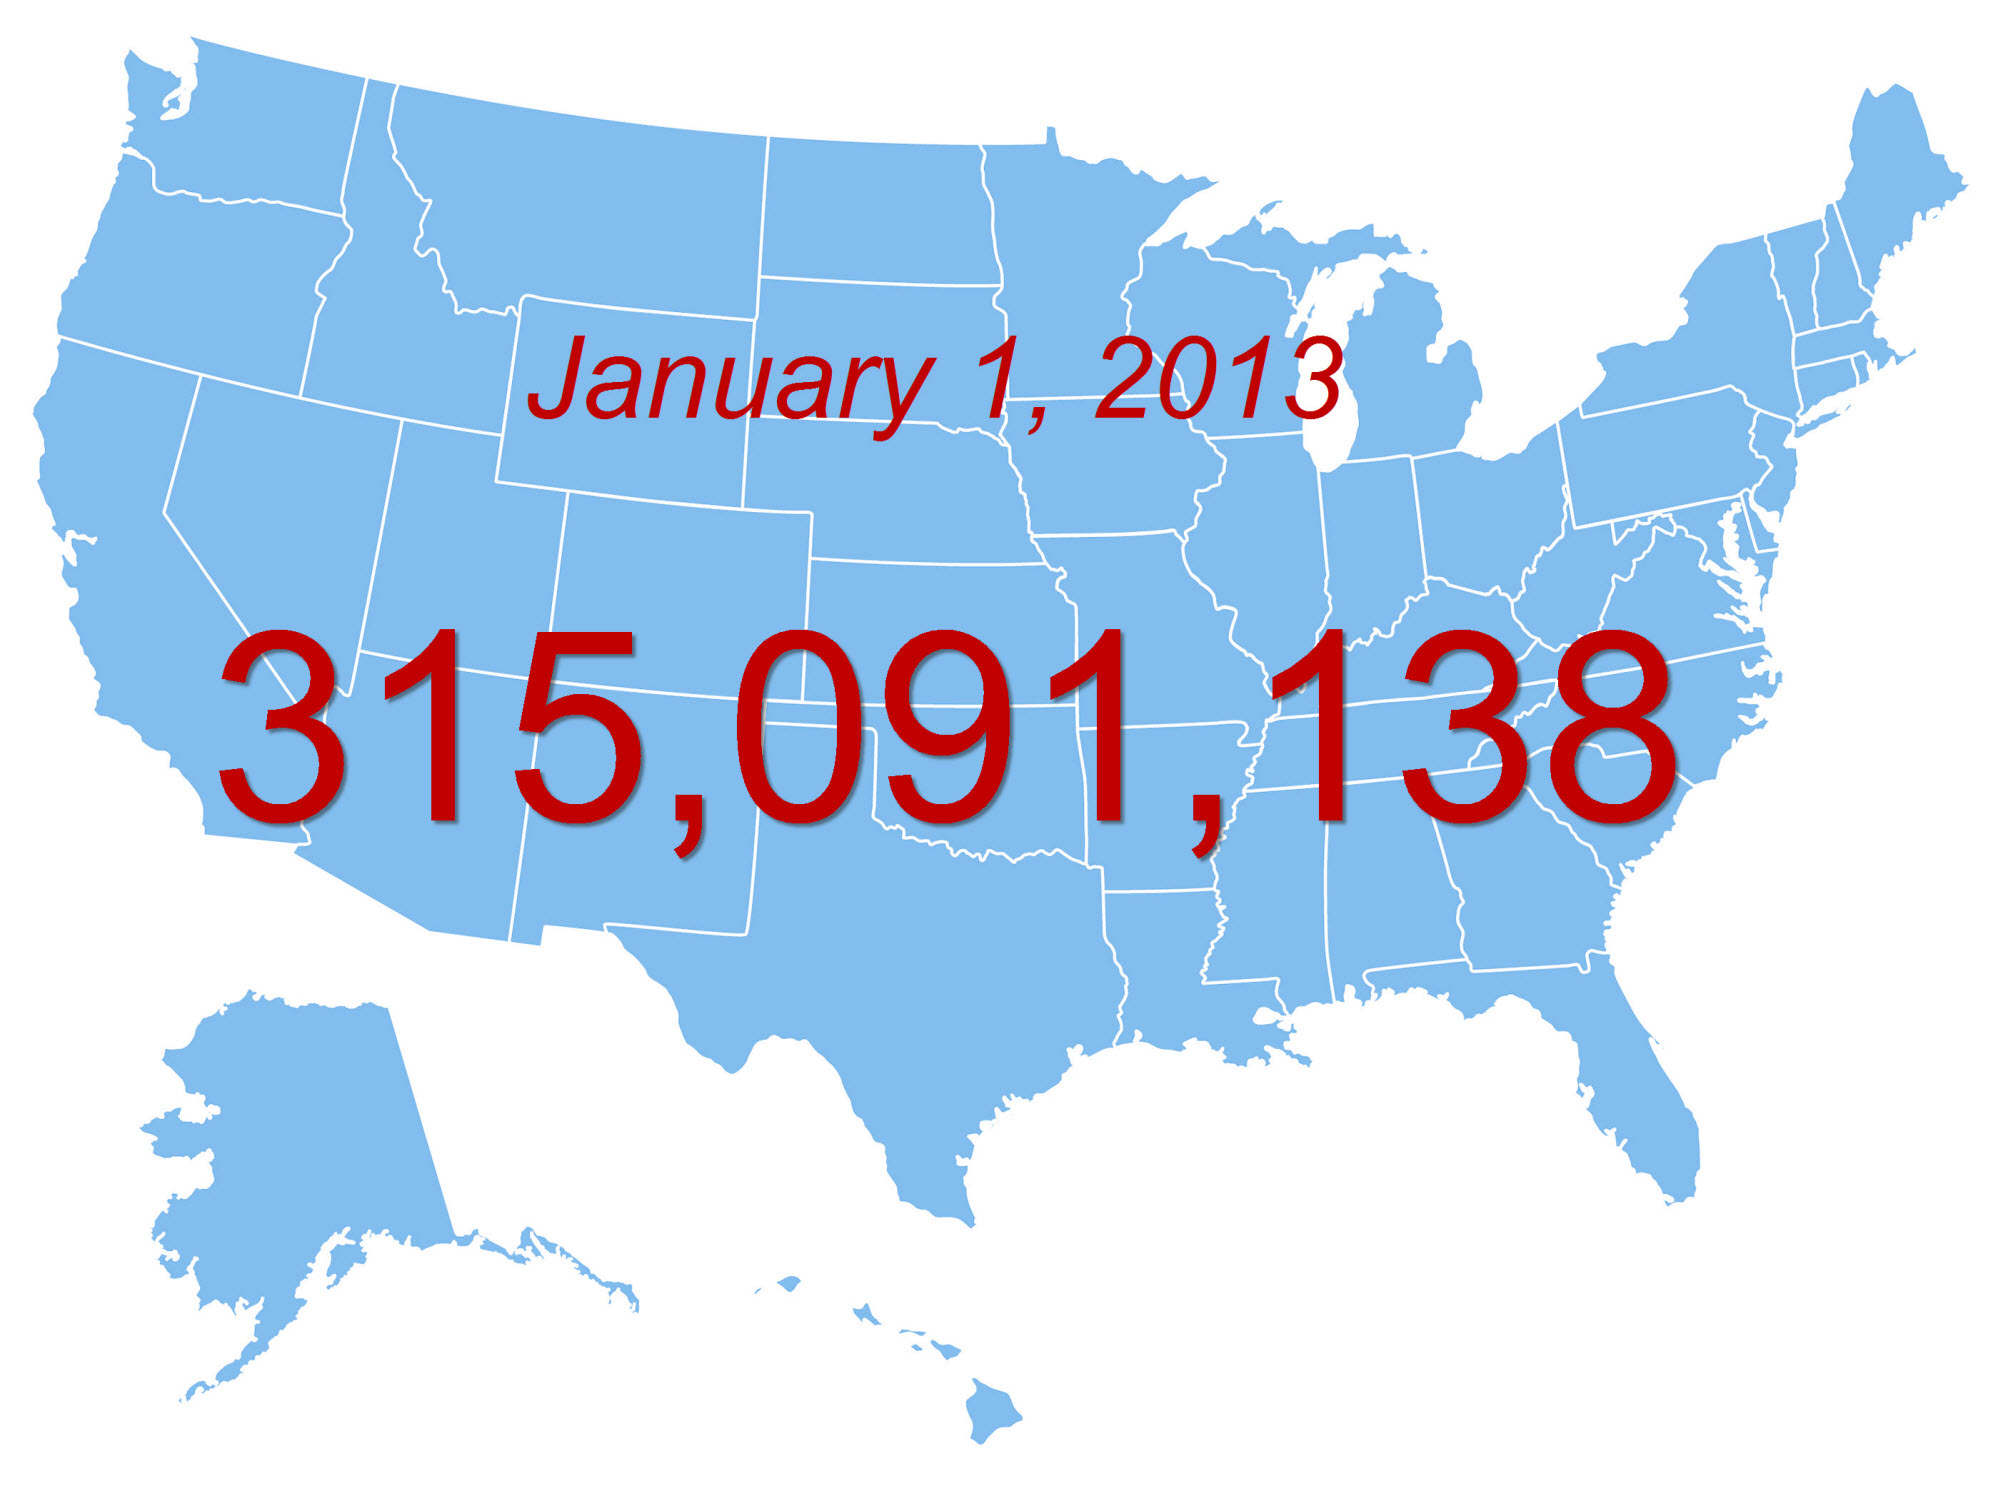 Map Of U S With Jan 1 2013 And Population Projection Overlay